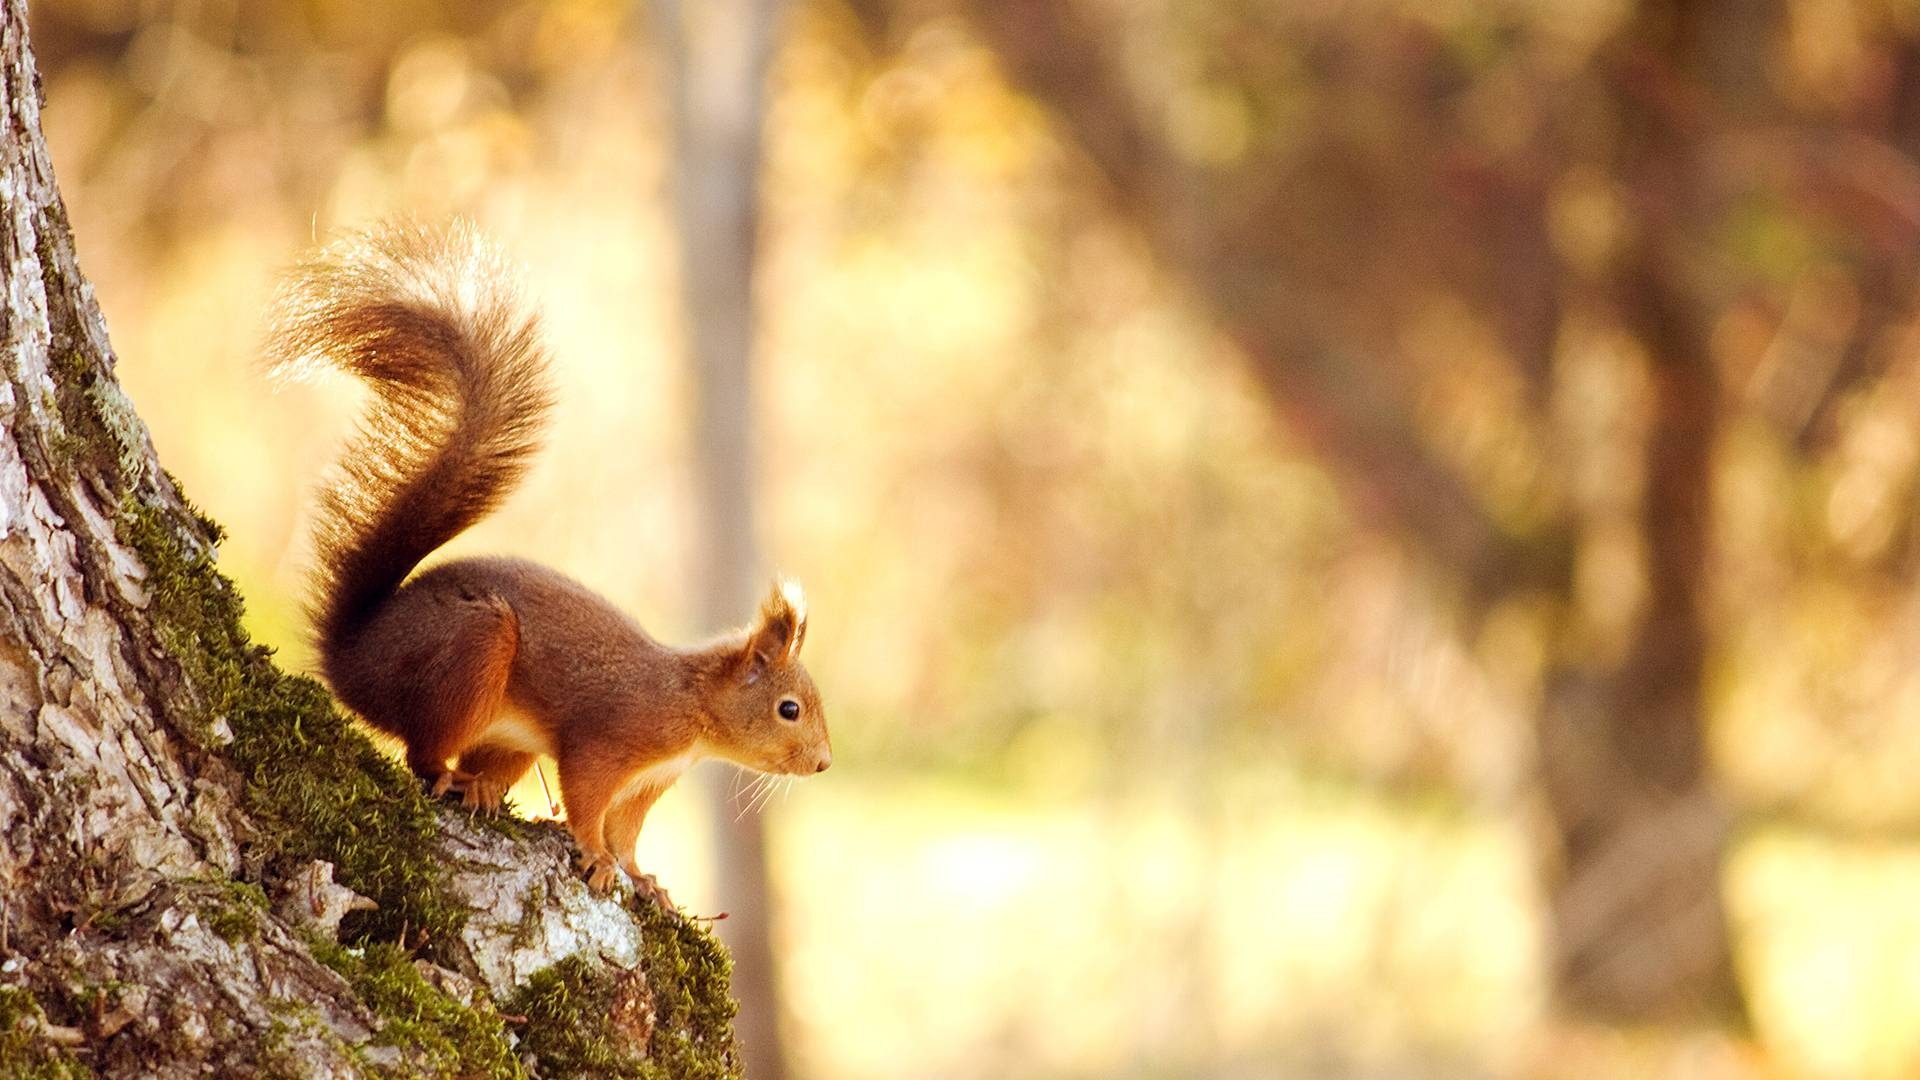 Spring Animals   Wallpaper High Definition High Quality Widescreen 1920x1080